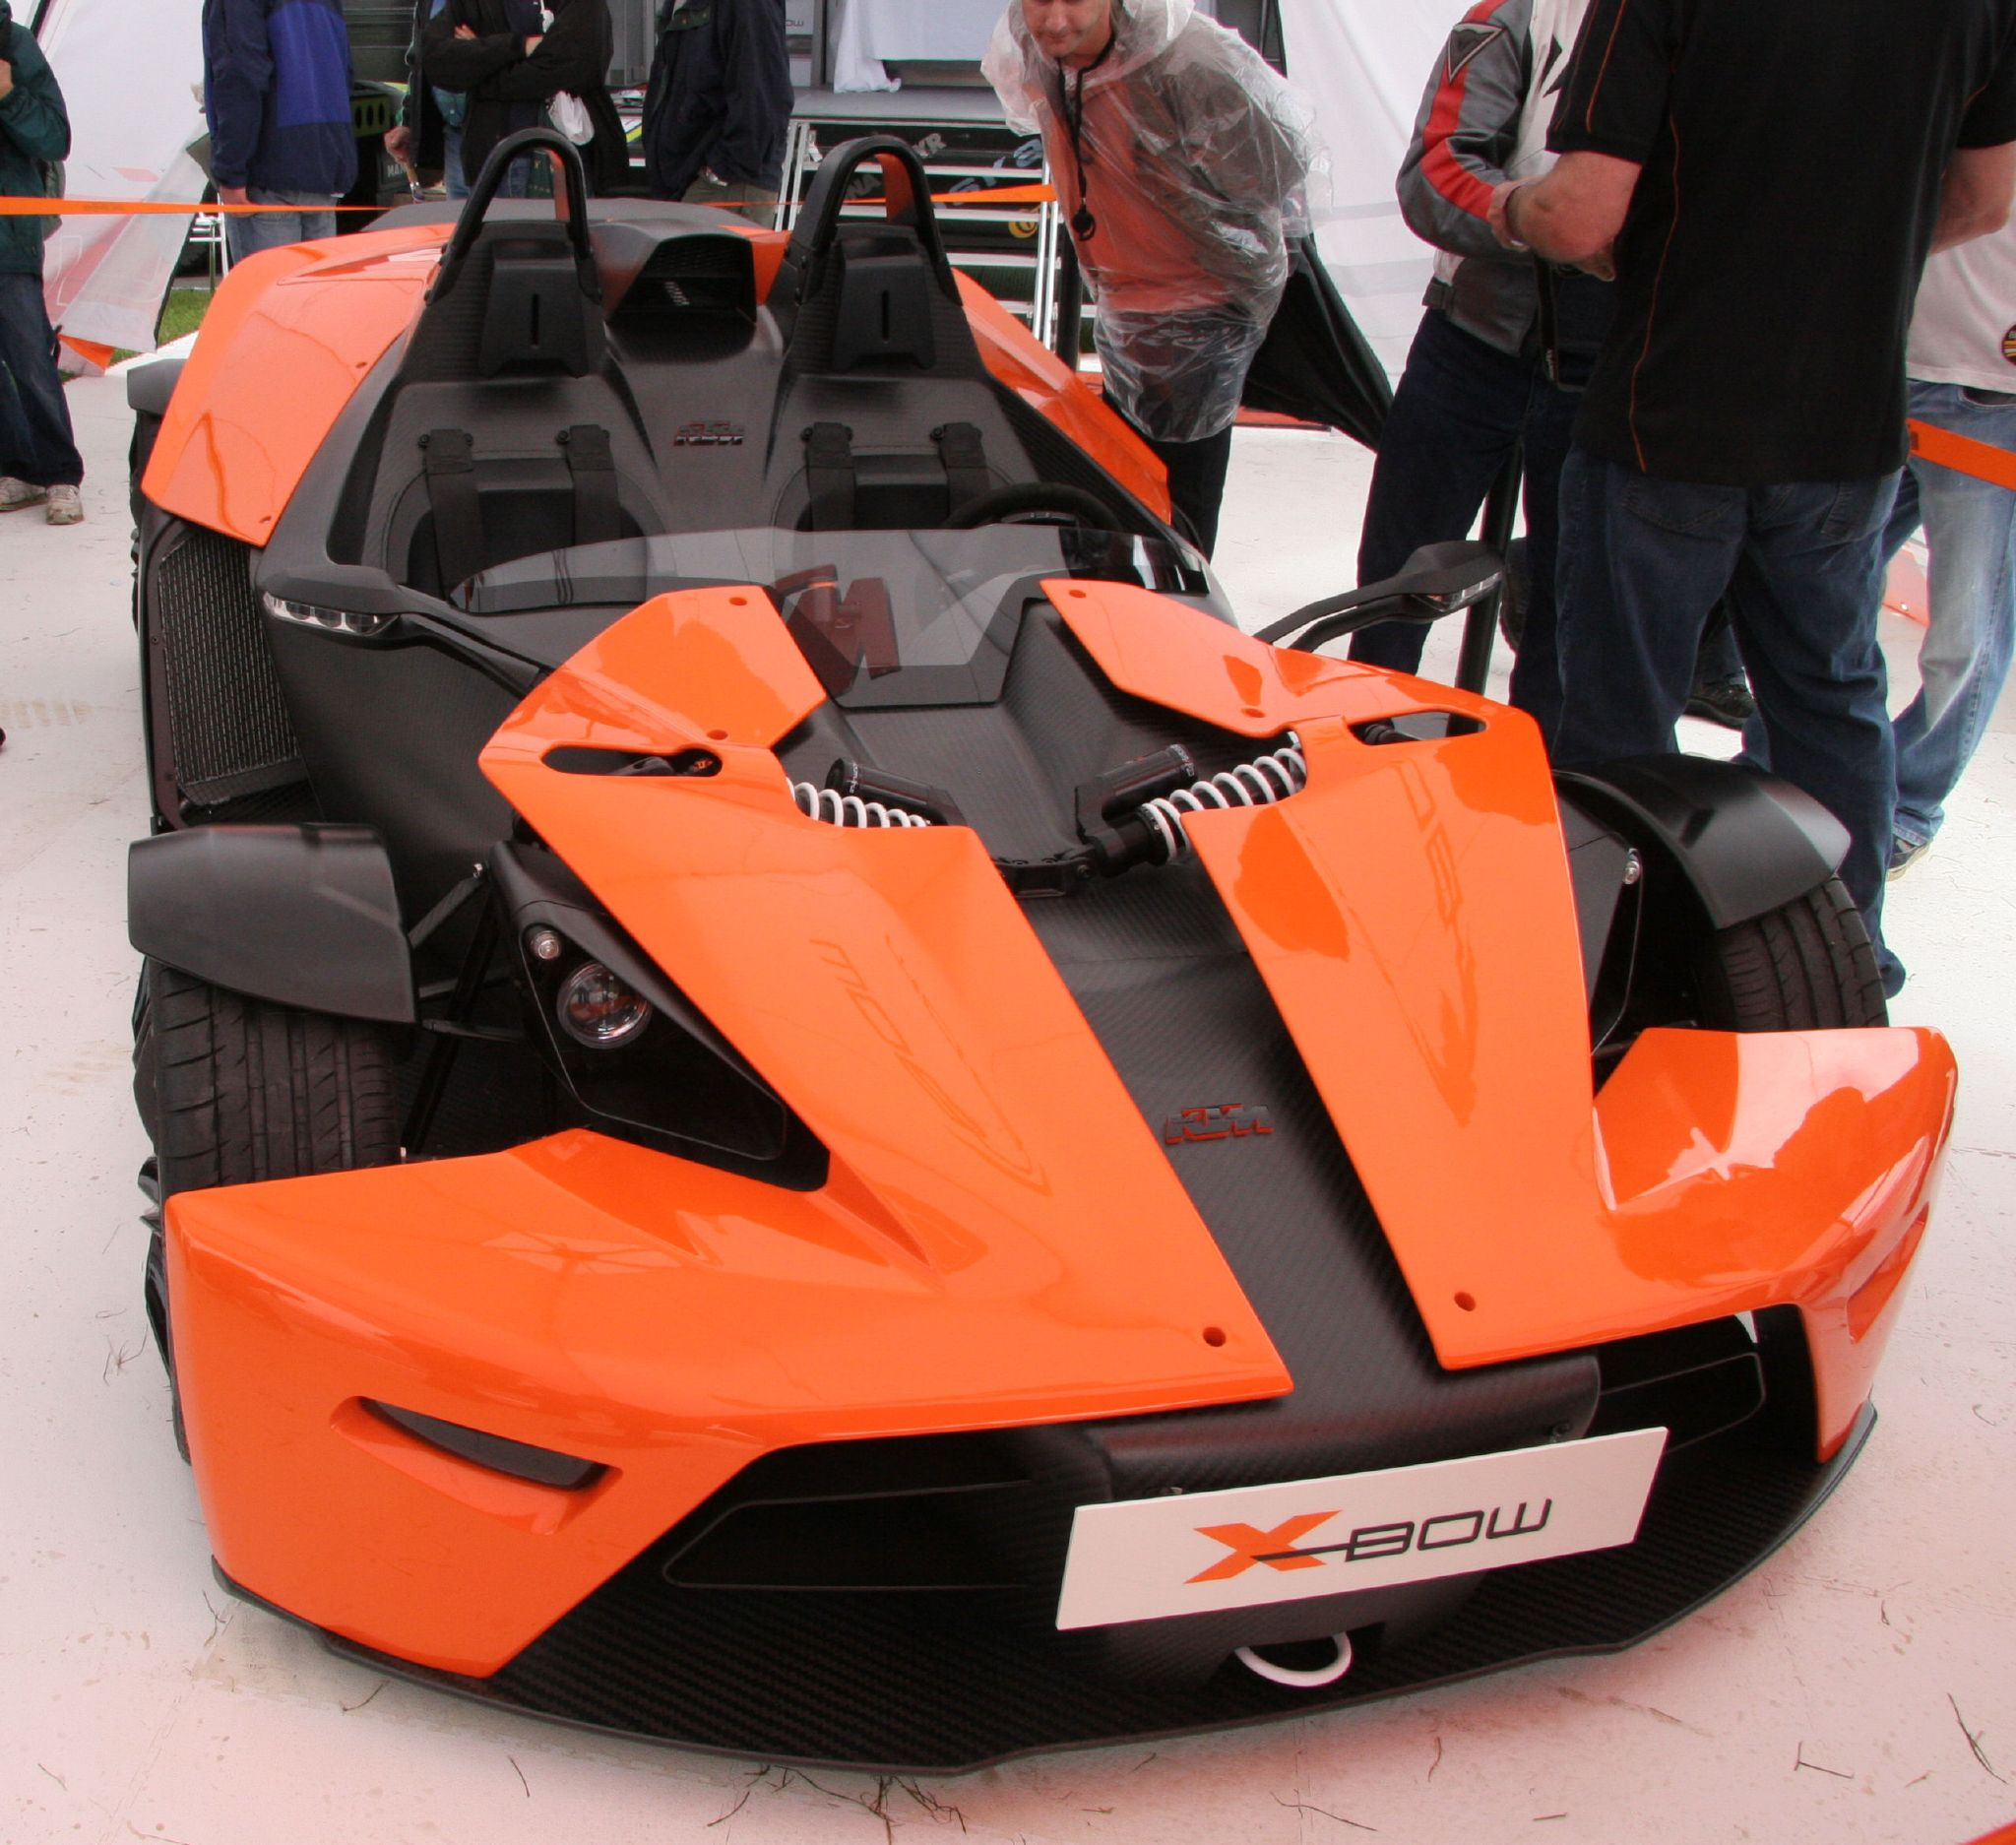 file ktm x bow. Black Bedroom Furniture Sets. Home Design Ideas